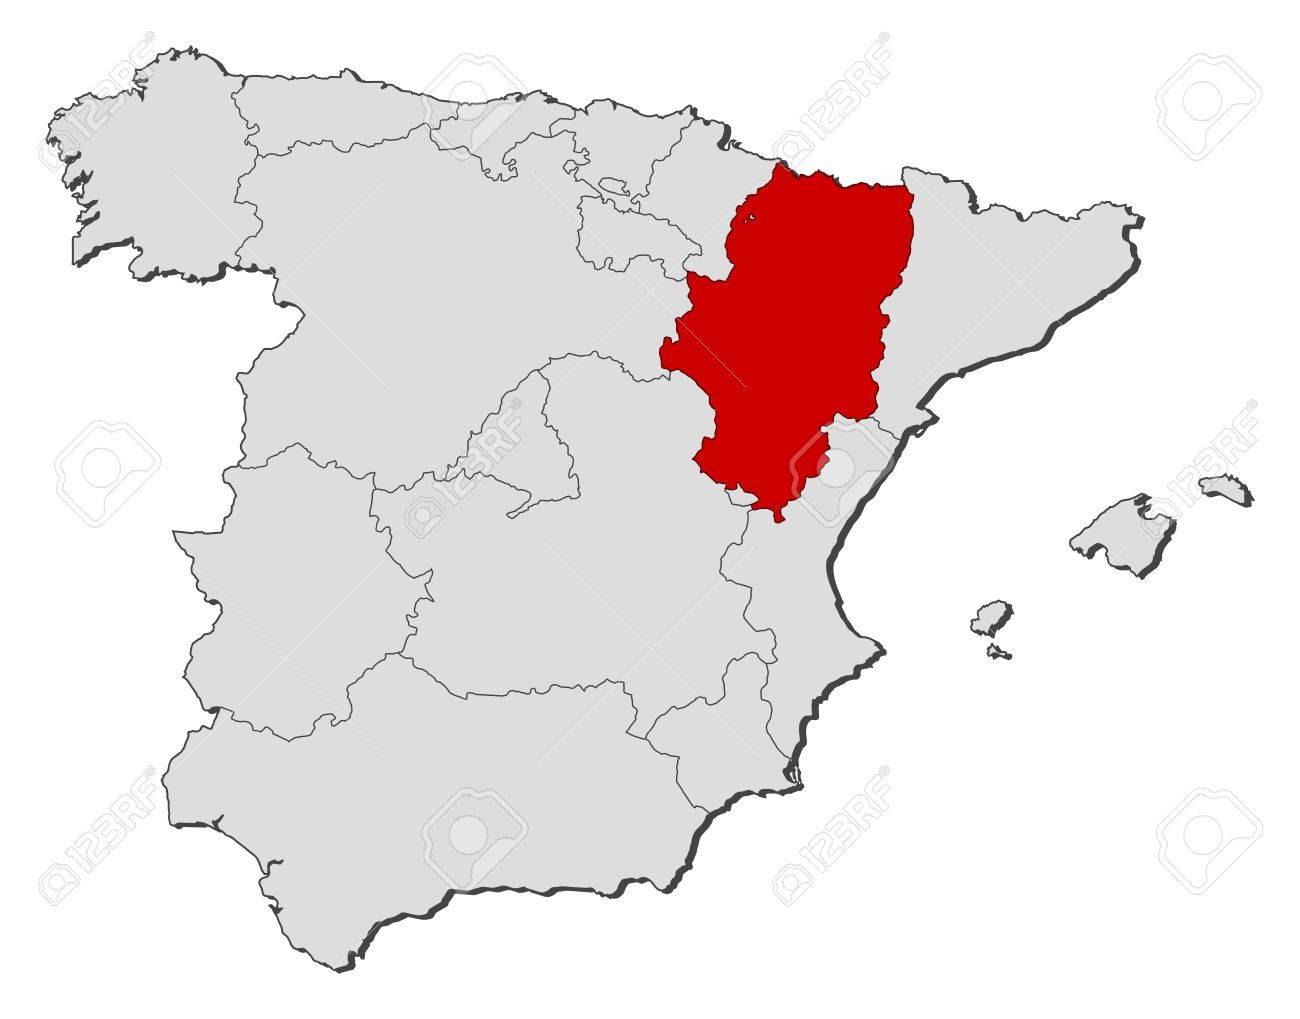 Political Map Of Spain With The Several Regions Where Aragon - Spain regions map